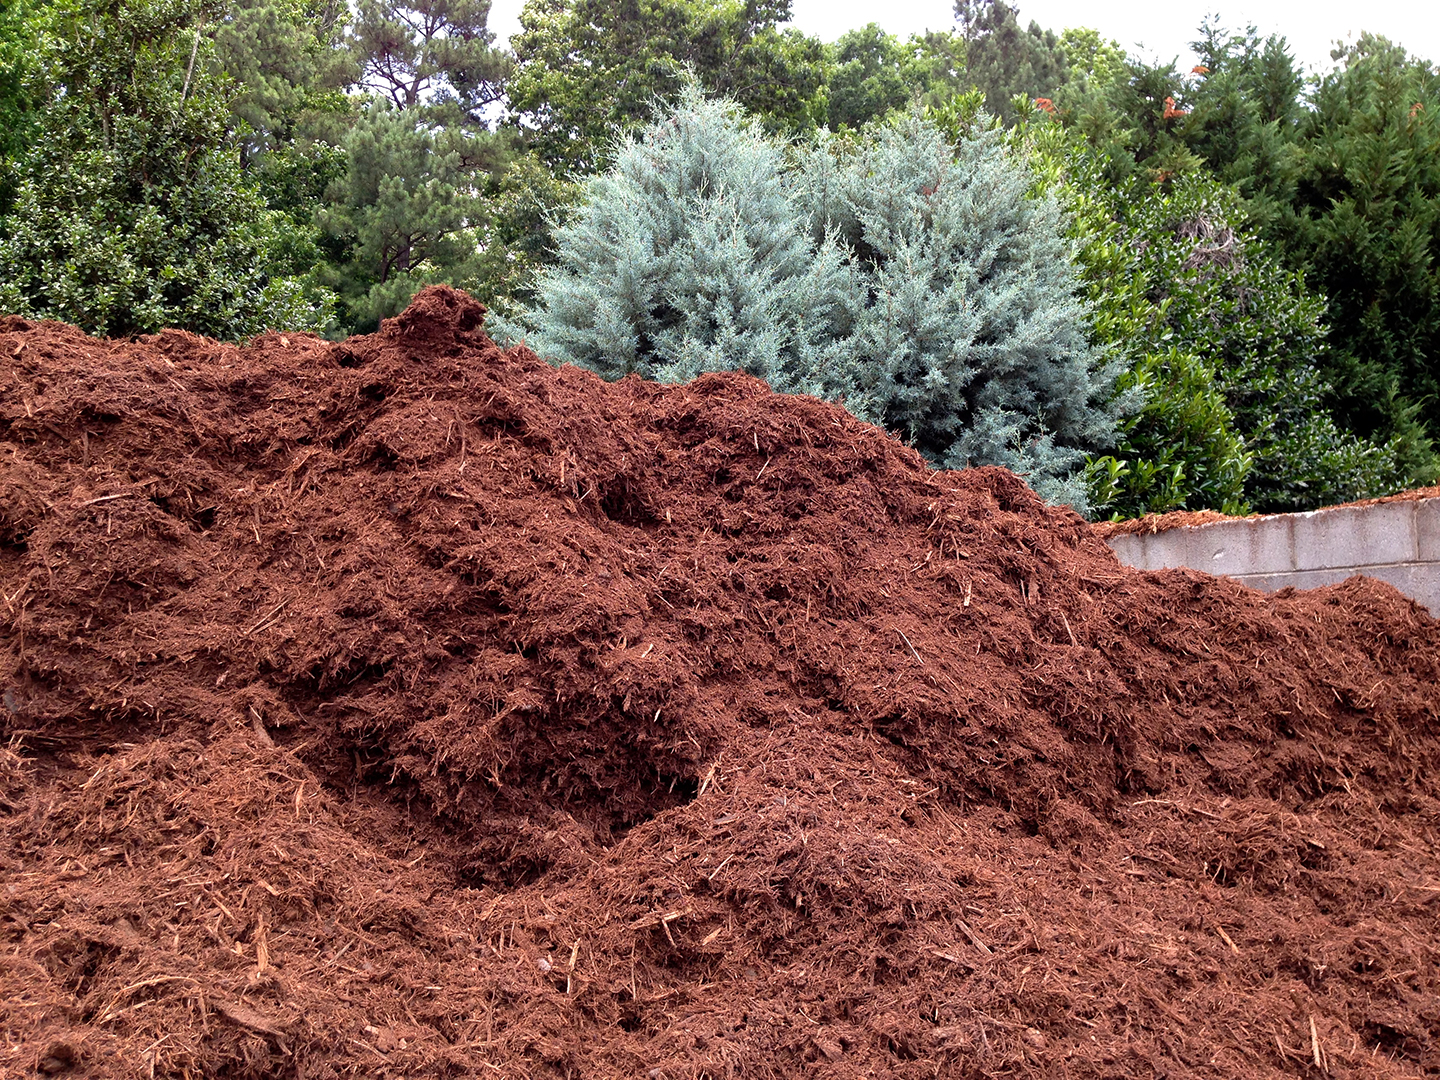 Triple-shredded hardwood mulch